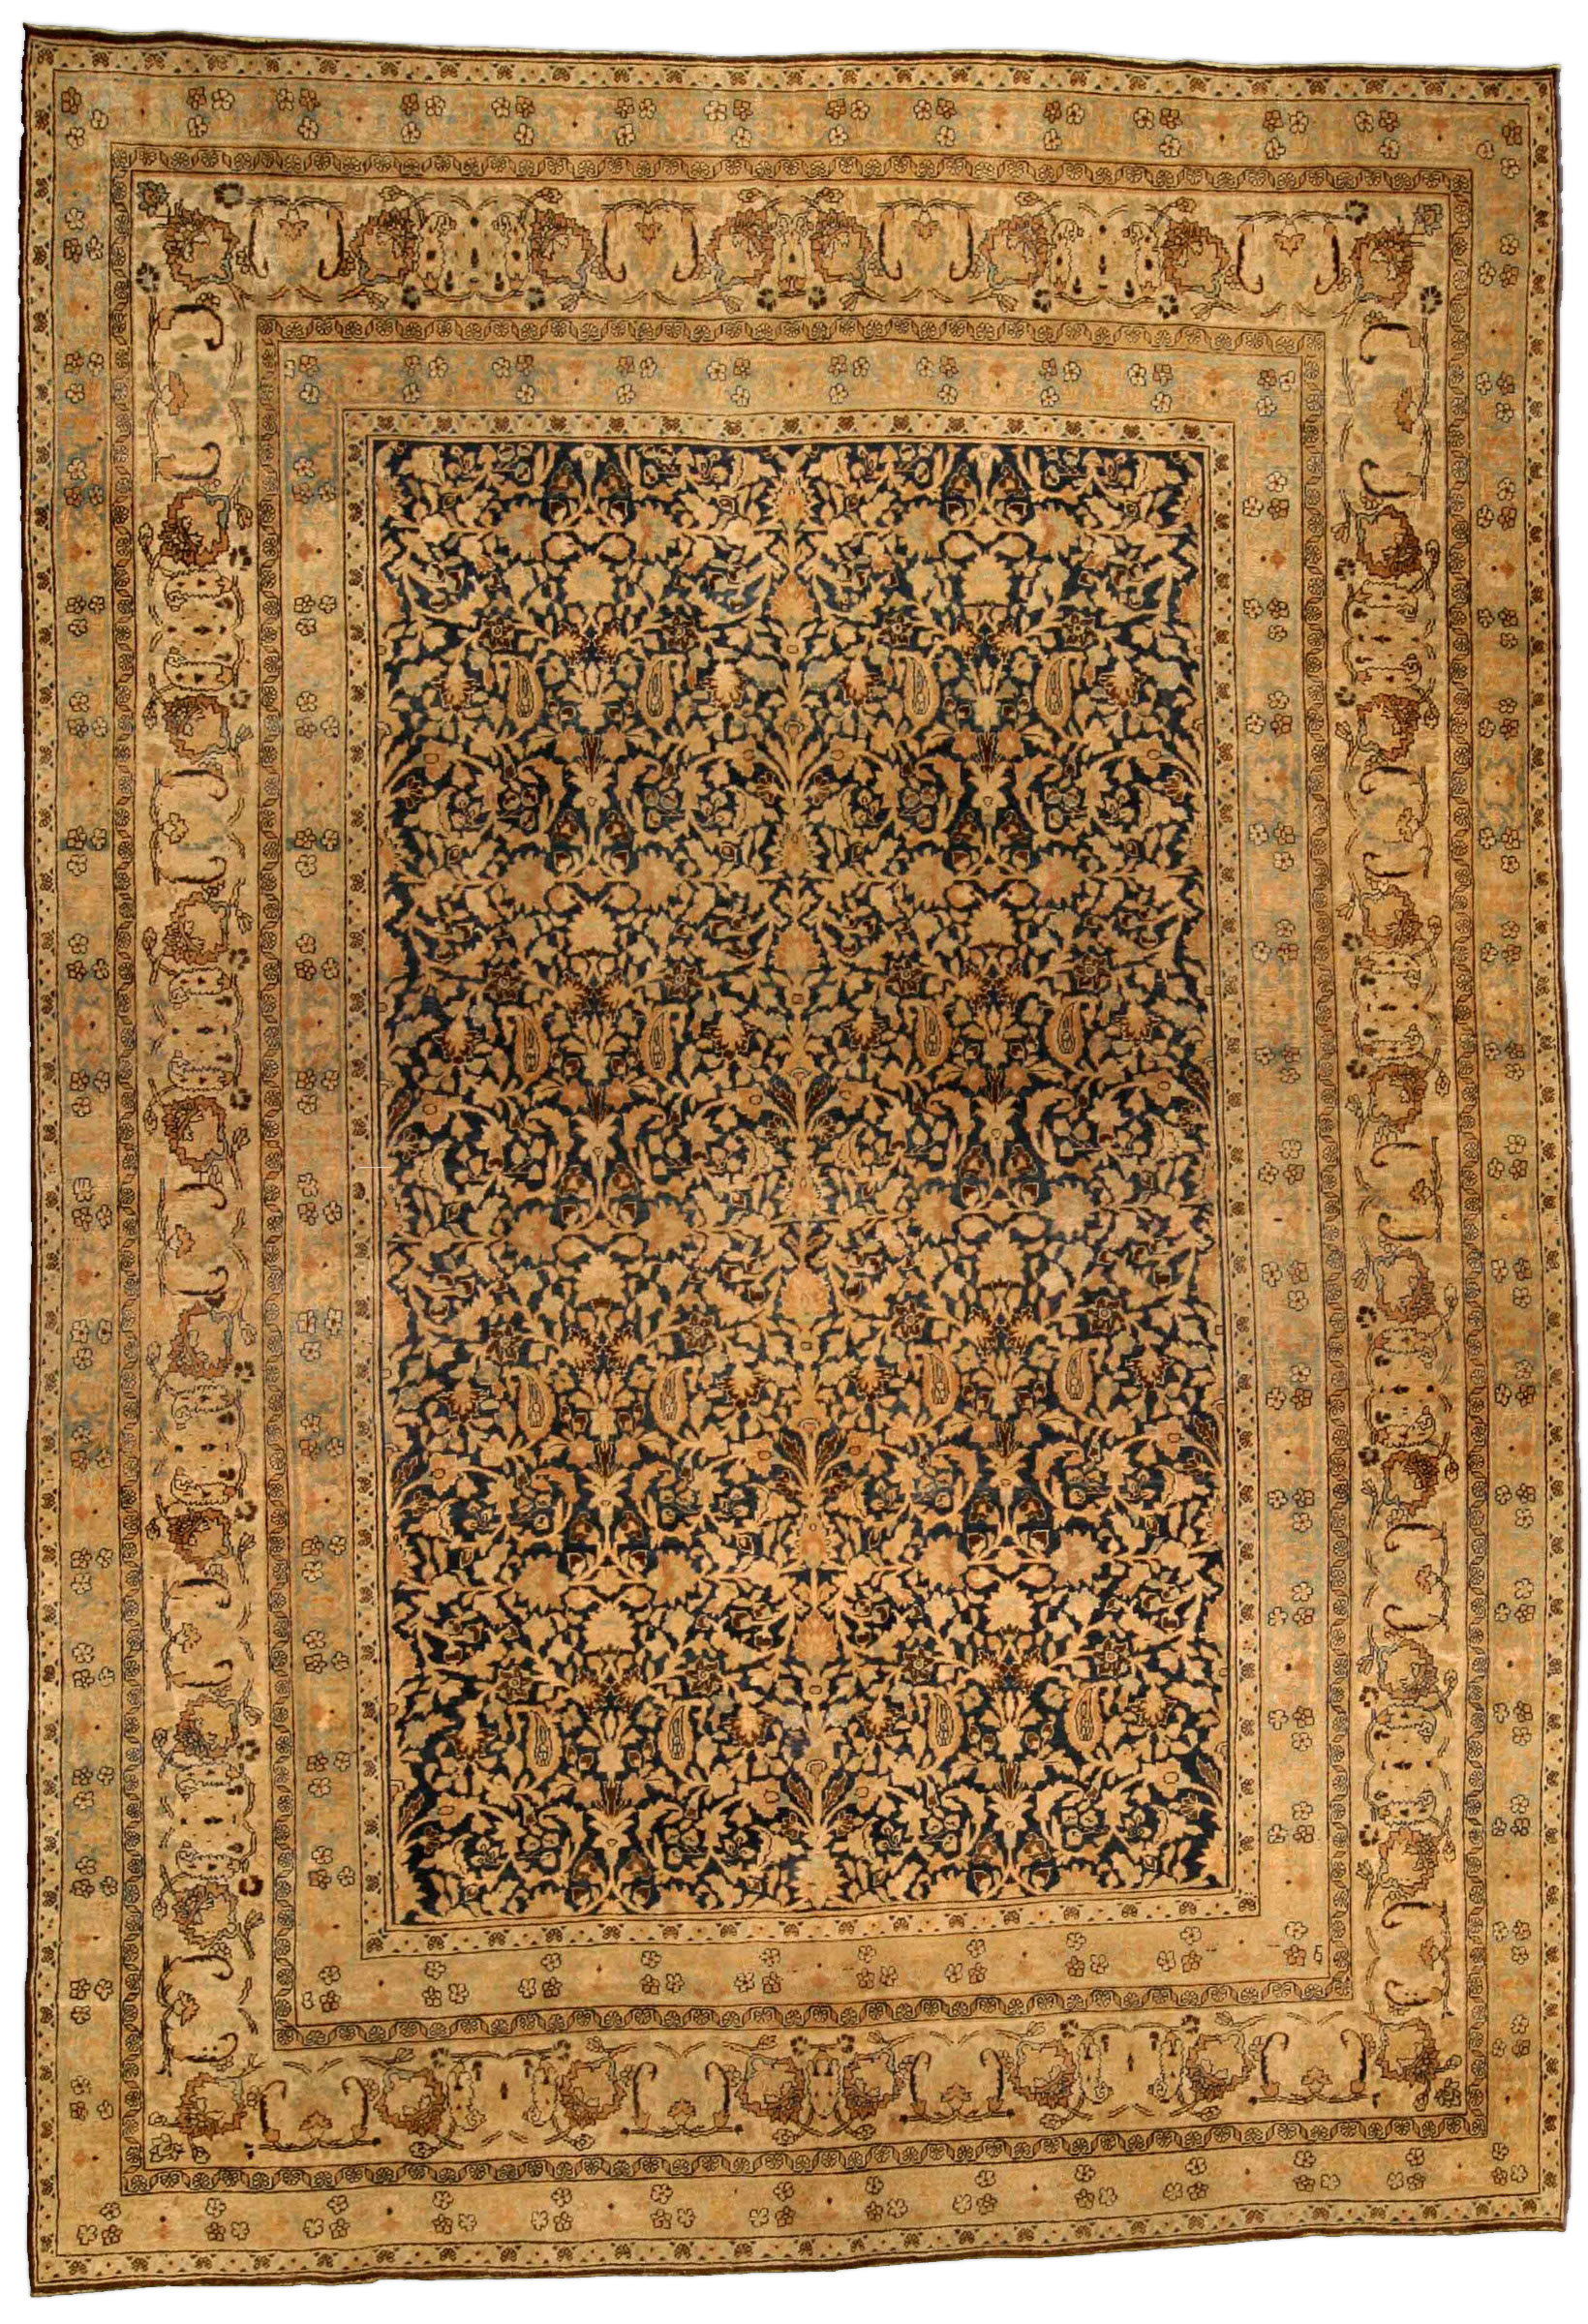 Antique Persian Kashan Carpet Bb4306 By Dlb